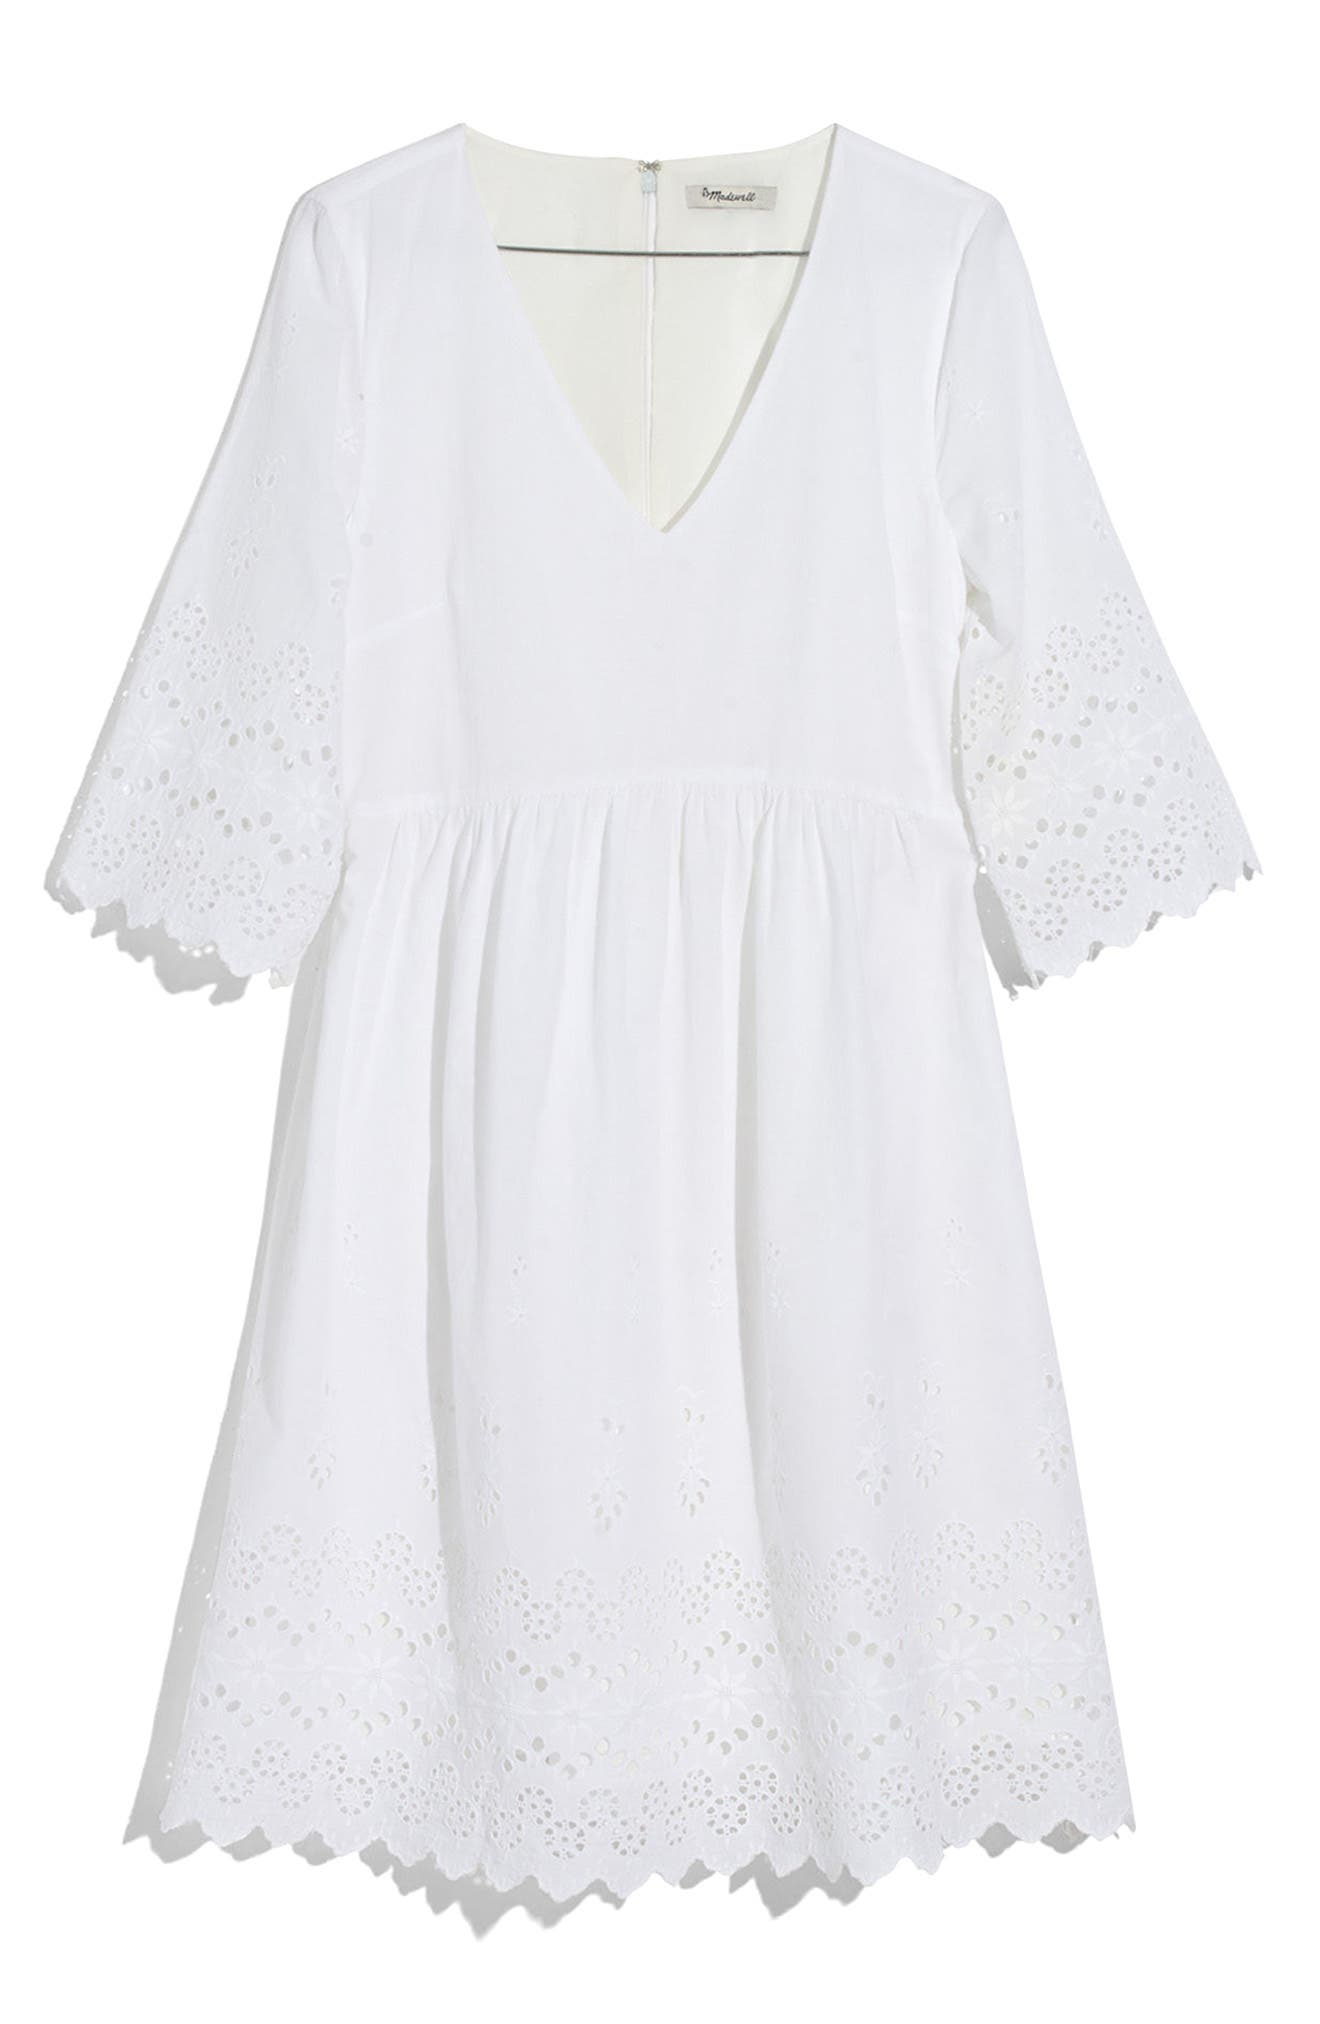 EYELET LATTICE DRESS